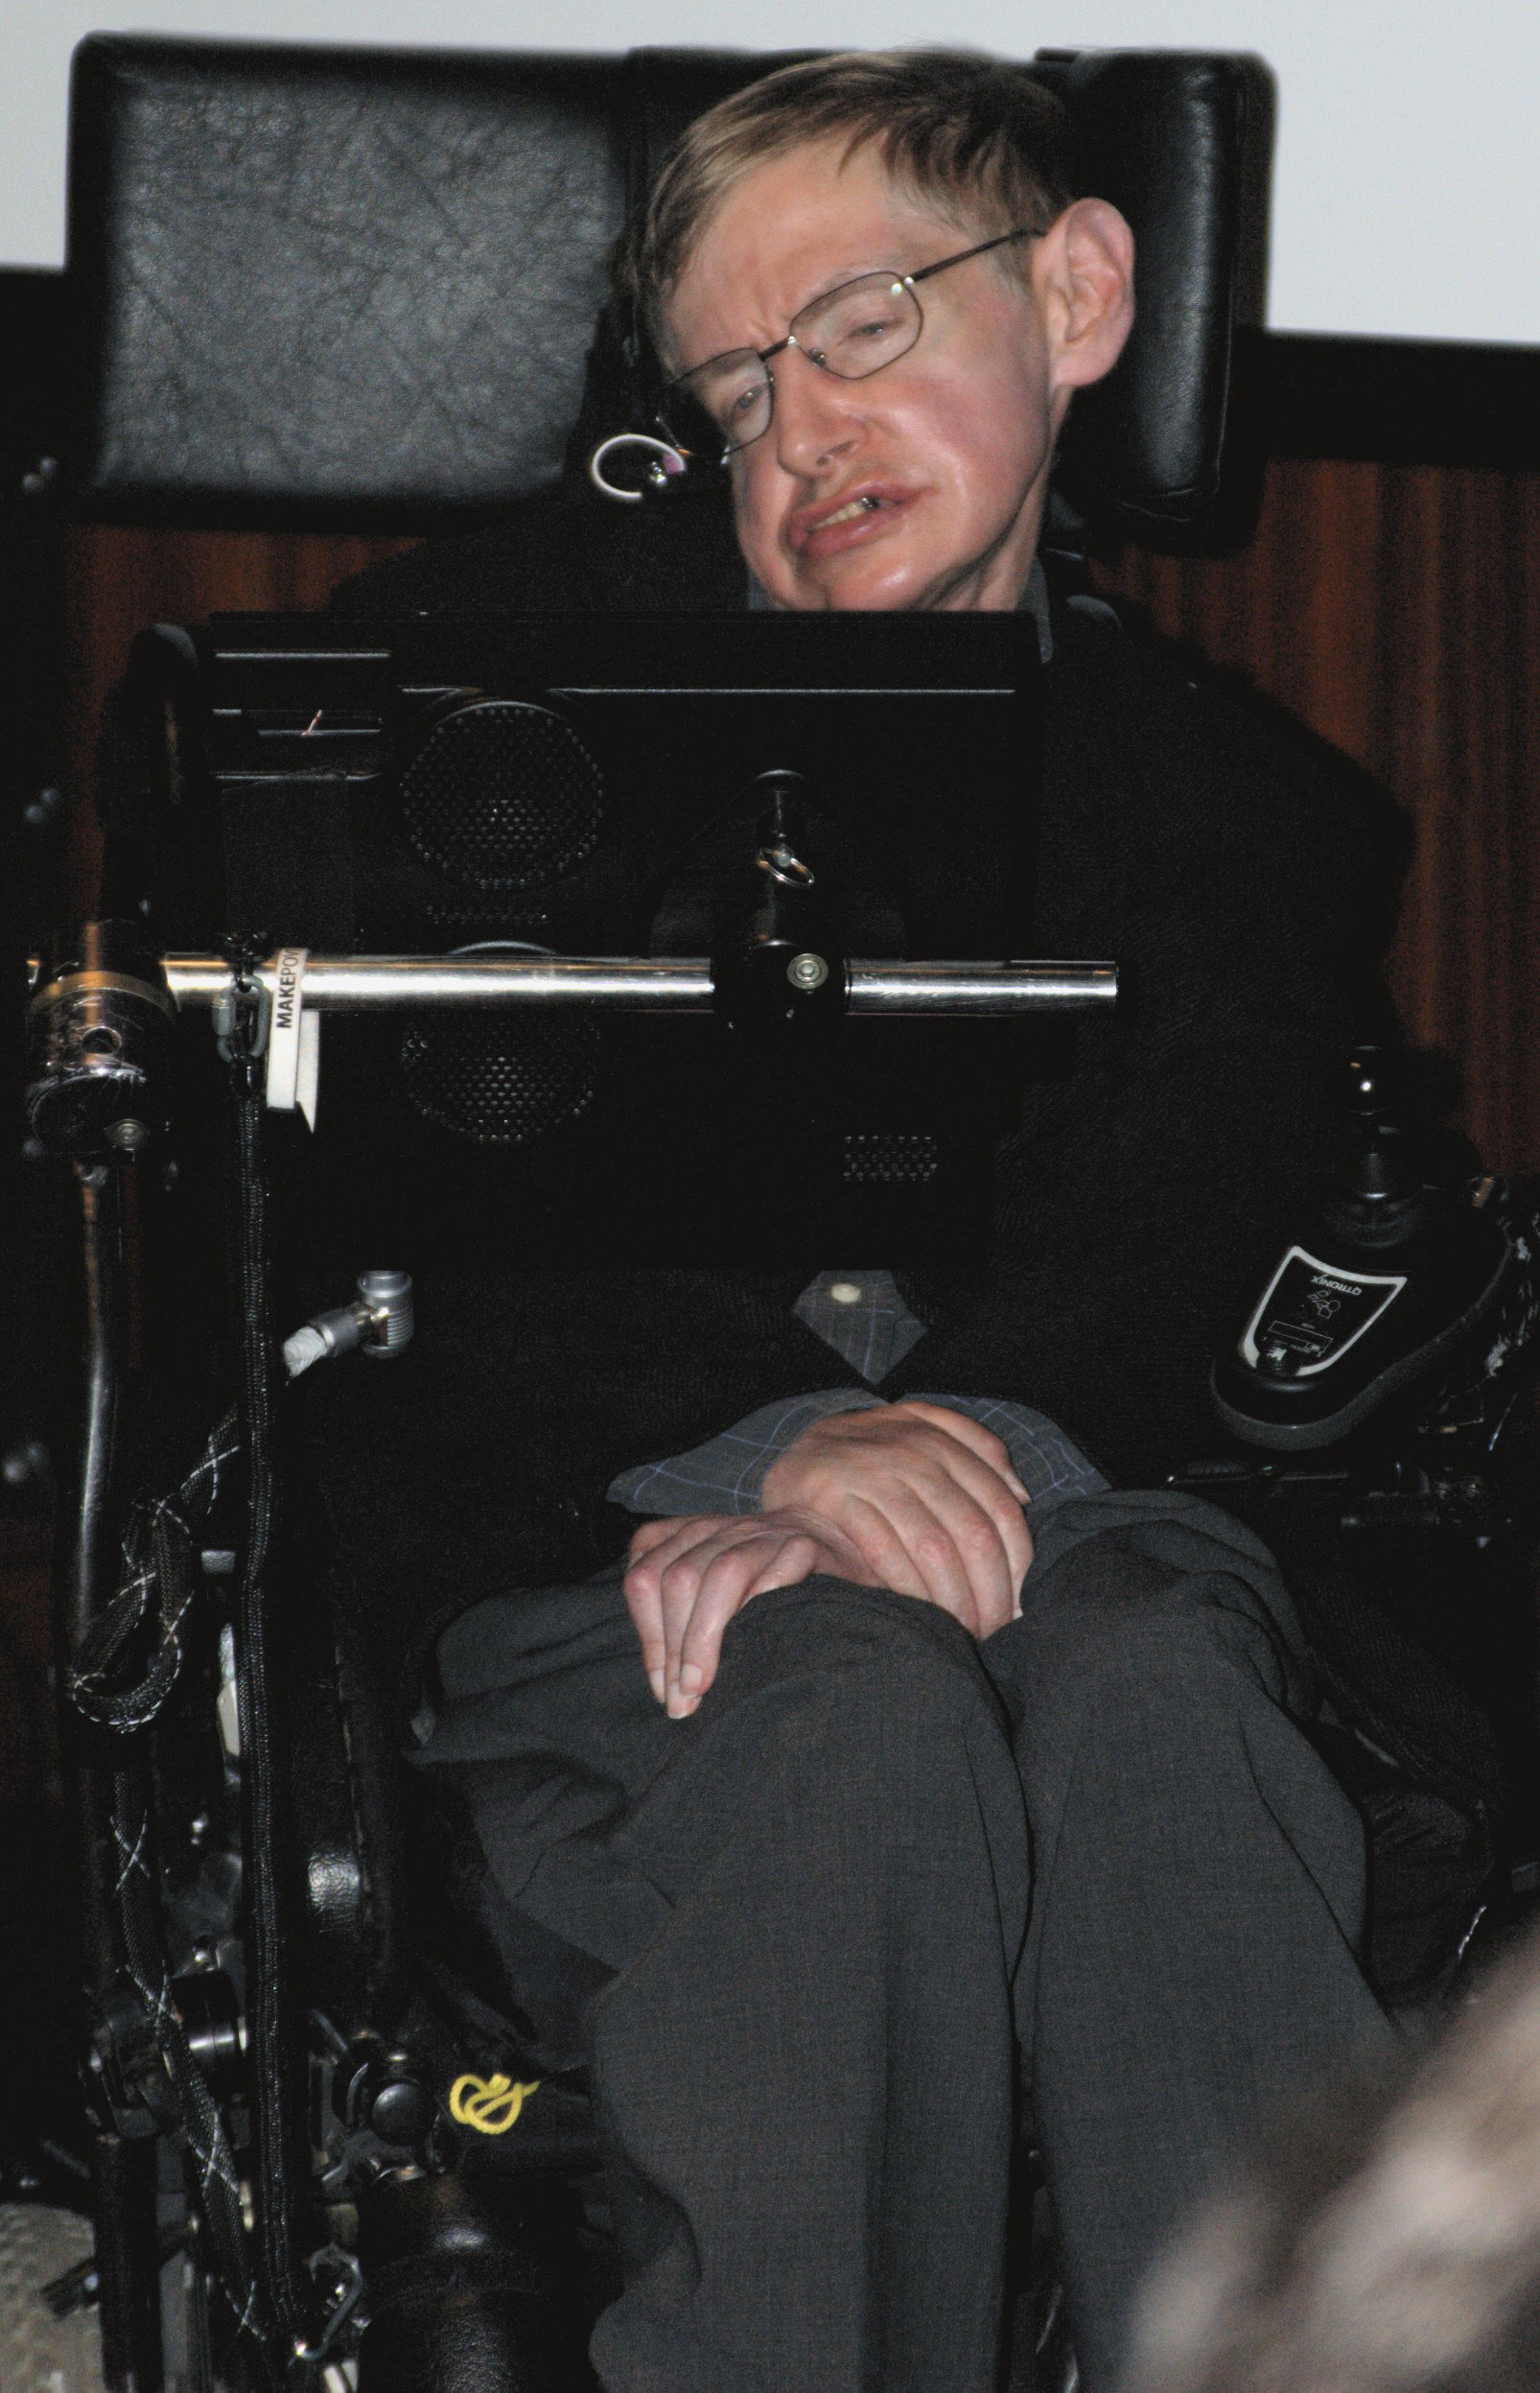 https://i2.wp.com/upload.wikimedia.org/wikipedia/commons/3/31/Stephen_Hawking_050506.jpg